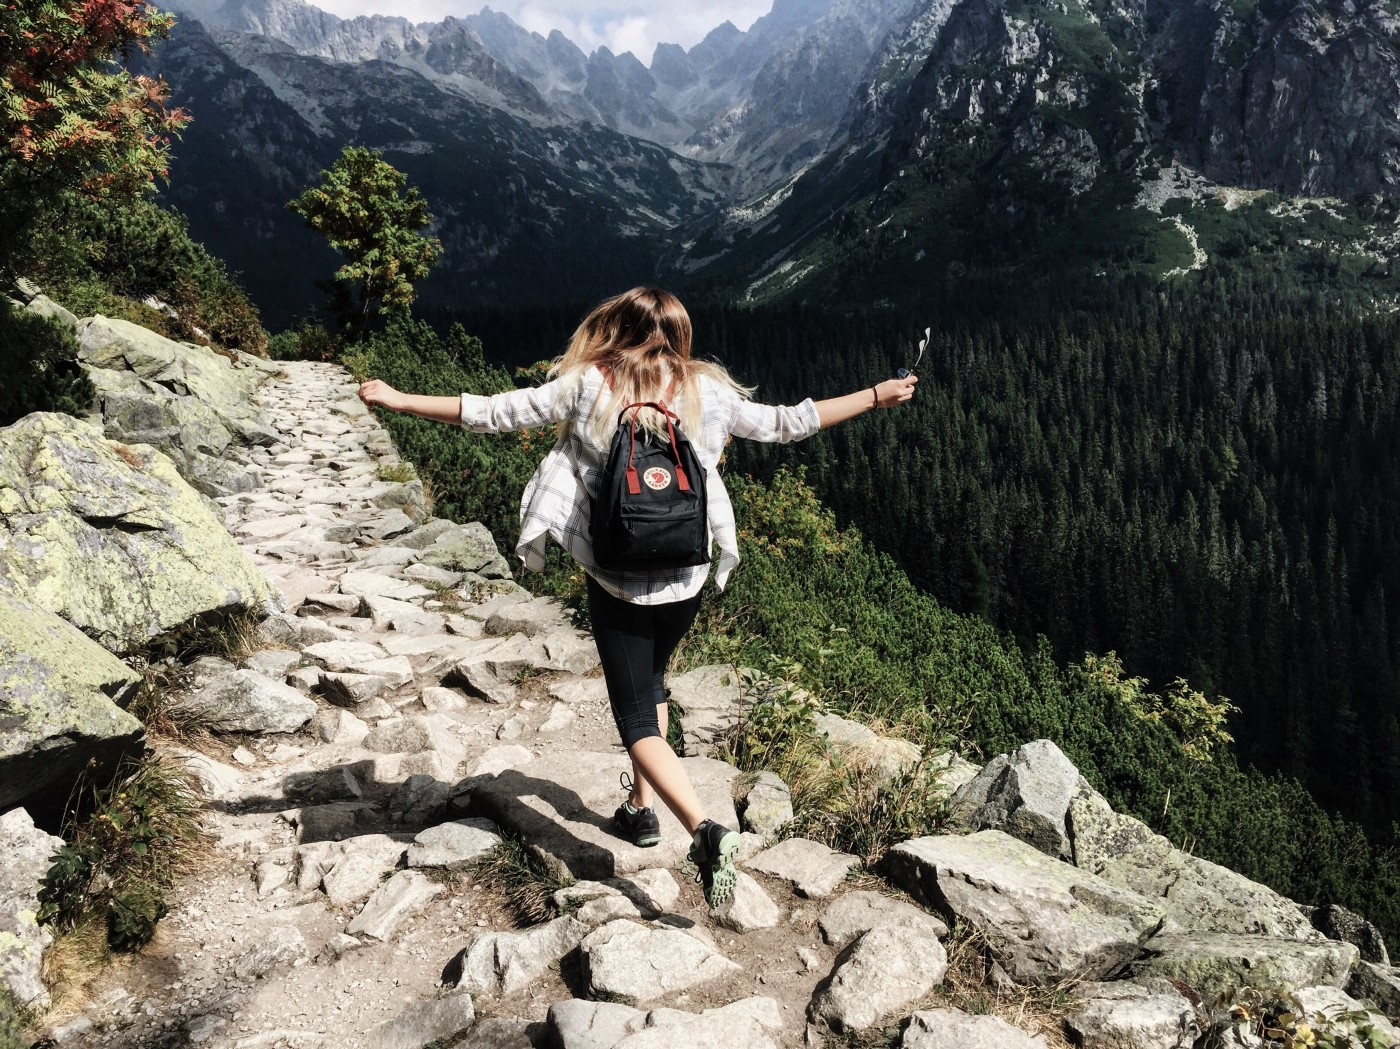 A woman wearing a backpack on a hike.